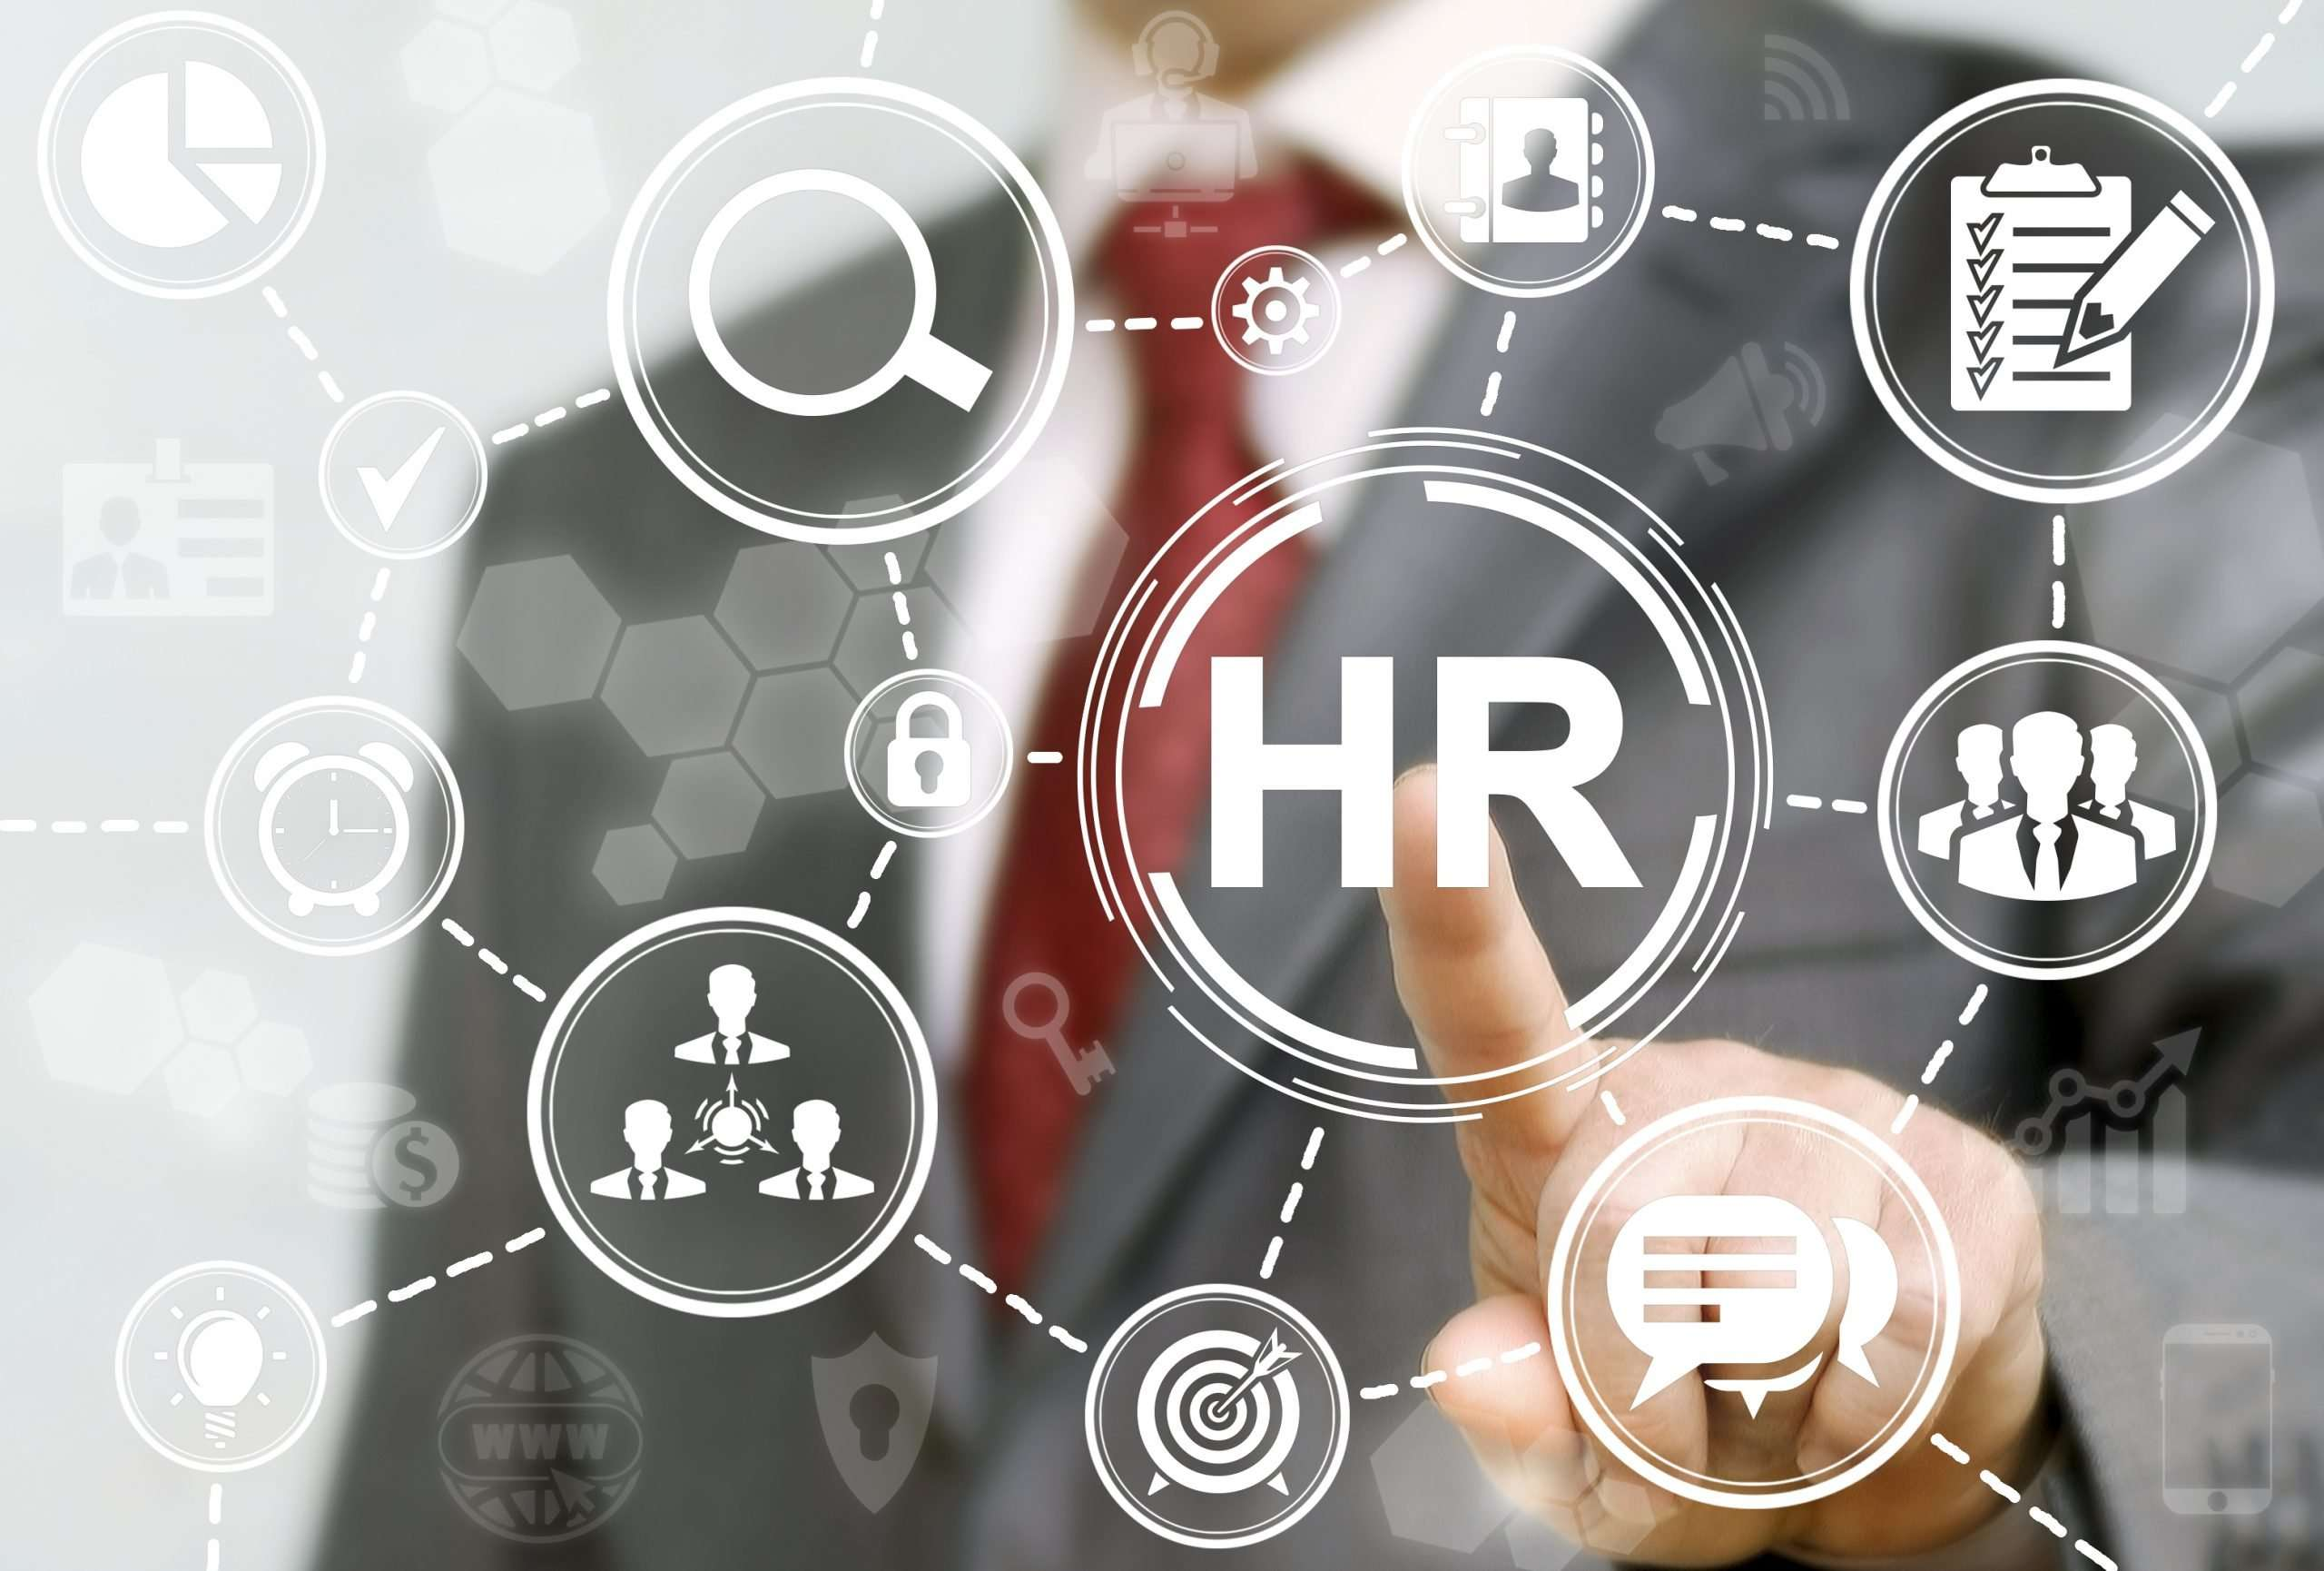 What are the roles and responsibilities of a HR executive